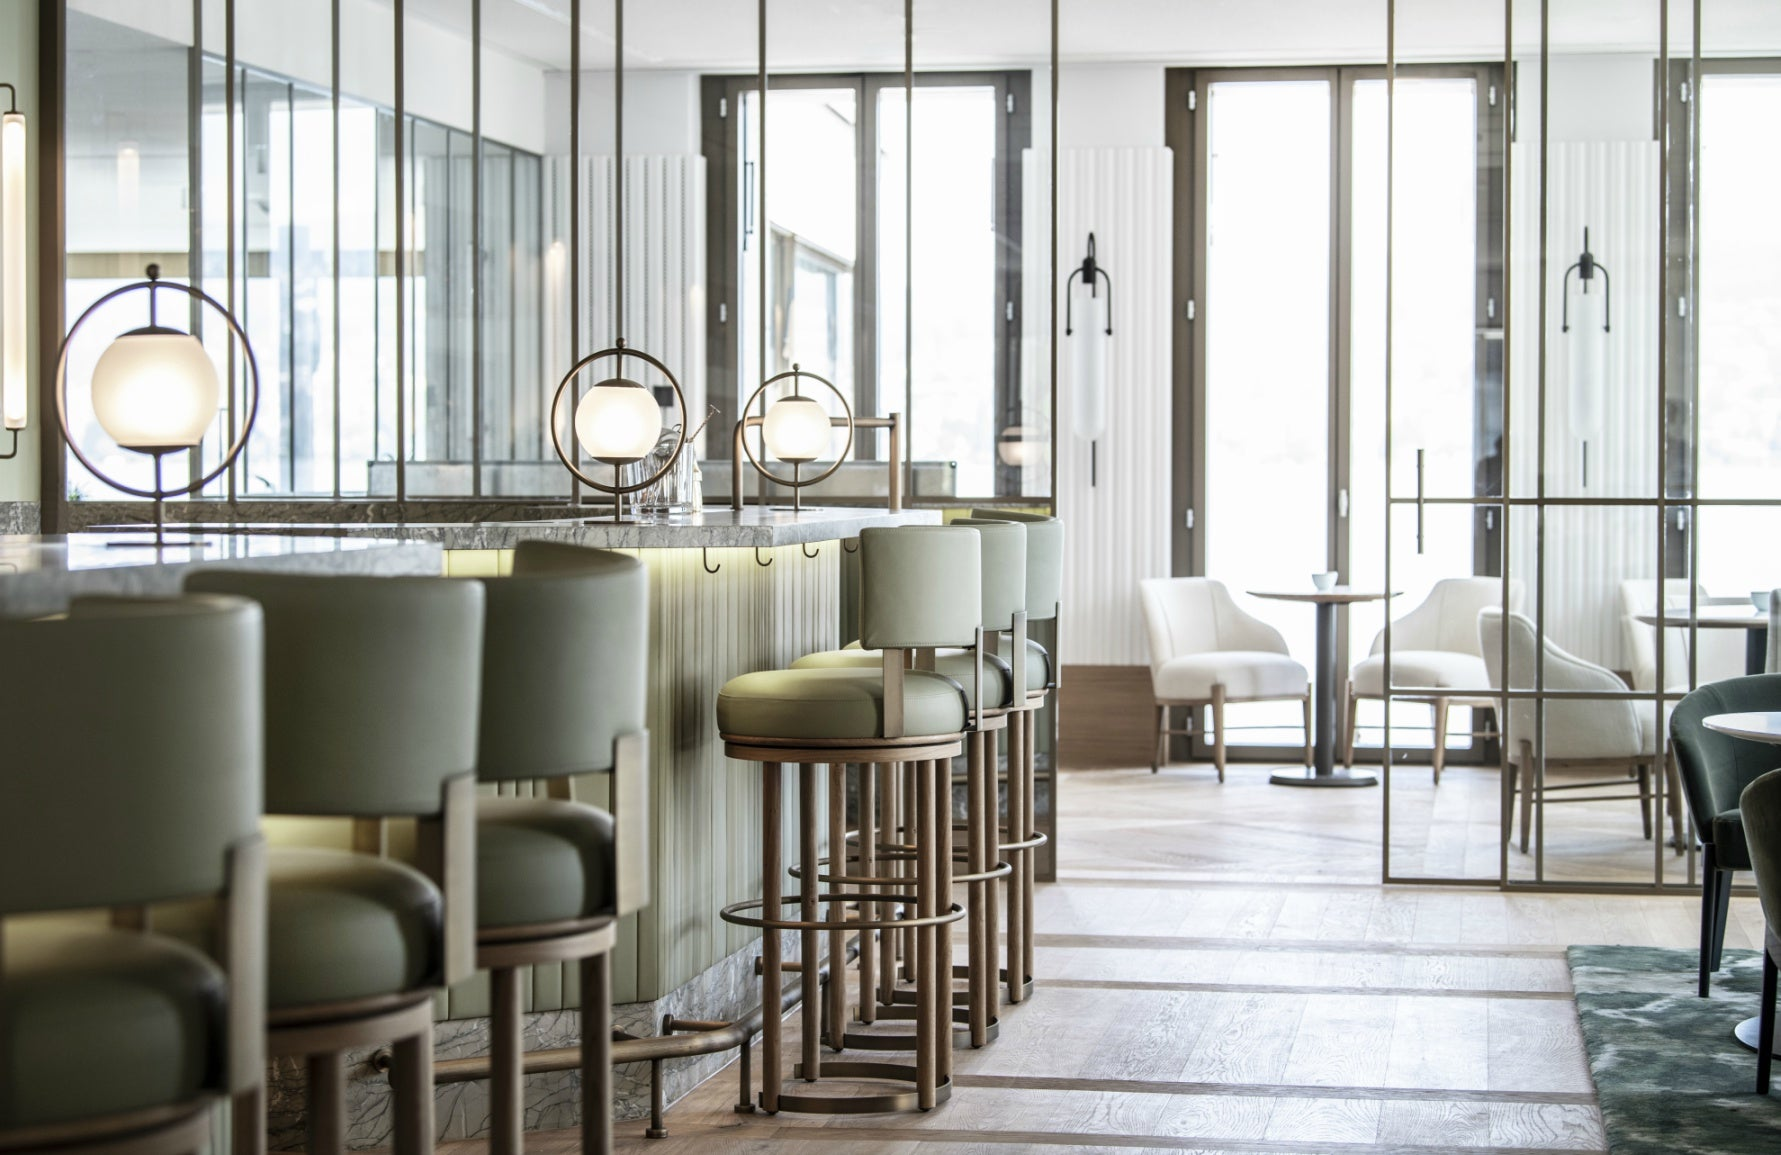 BradyWilliams | Luxury Restaurant Design | Hotel Lake, Zurich | LuxDeco.com | The Luxurist